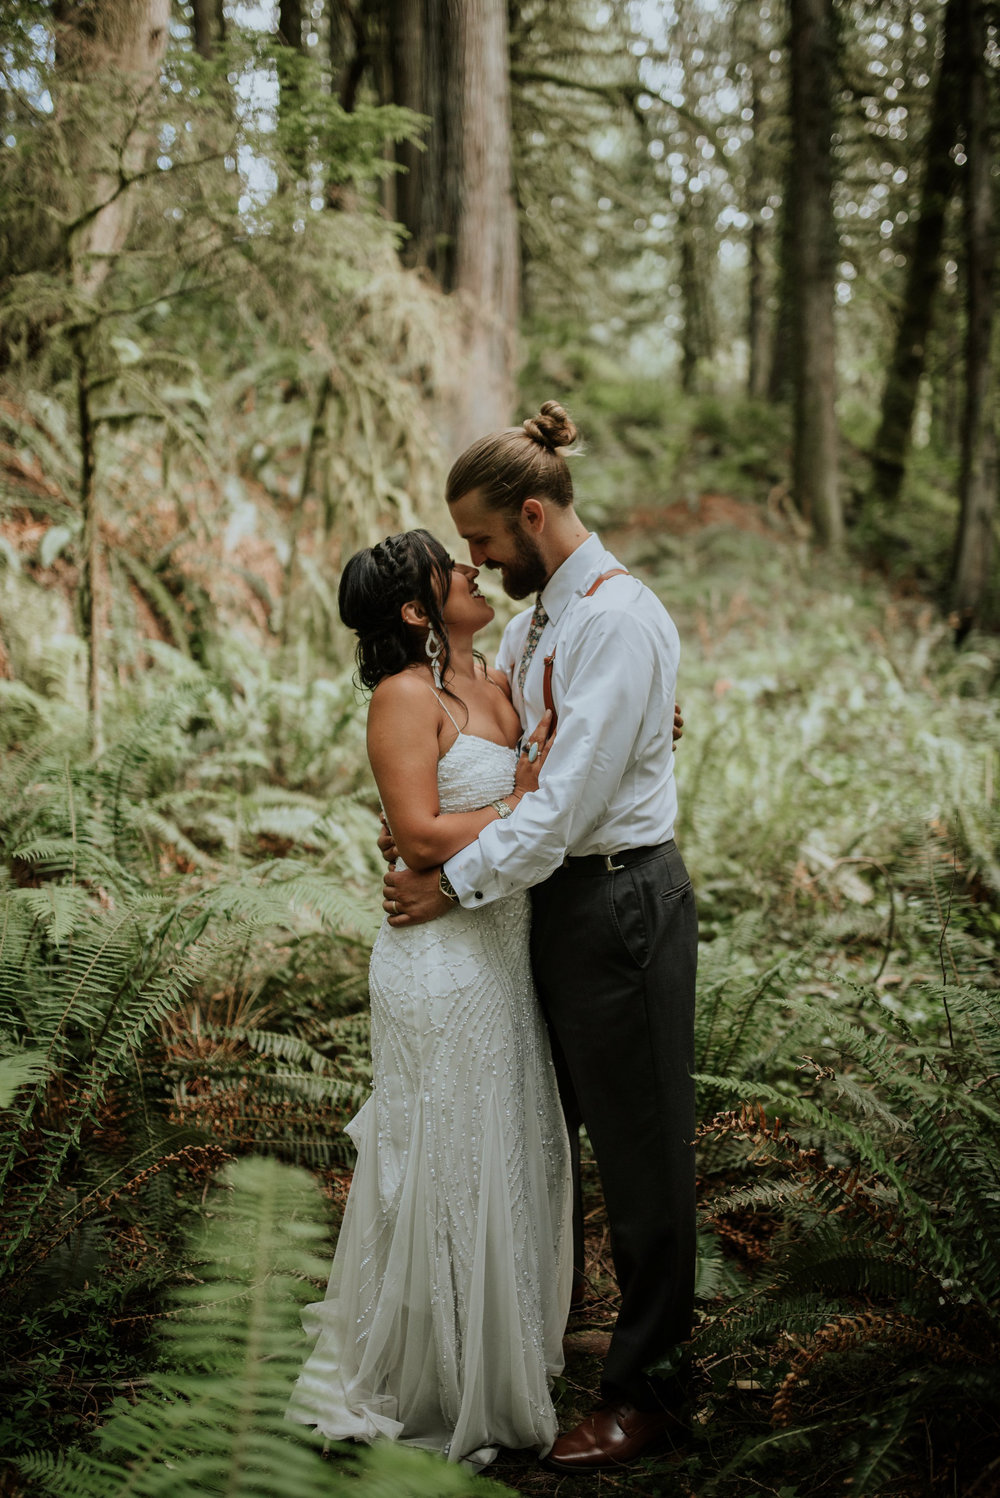 intimate-boho-campfire-wedding-shangri-la-on-the-green-seattle-wedding-photographer-caitlyn-nikula-photography-73.jpg